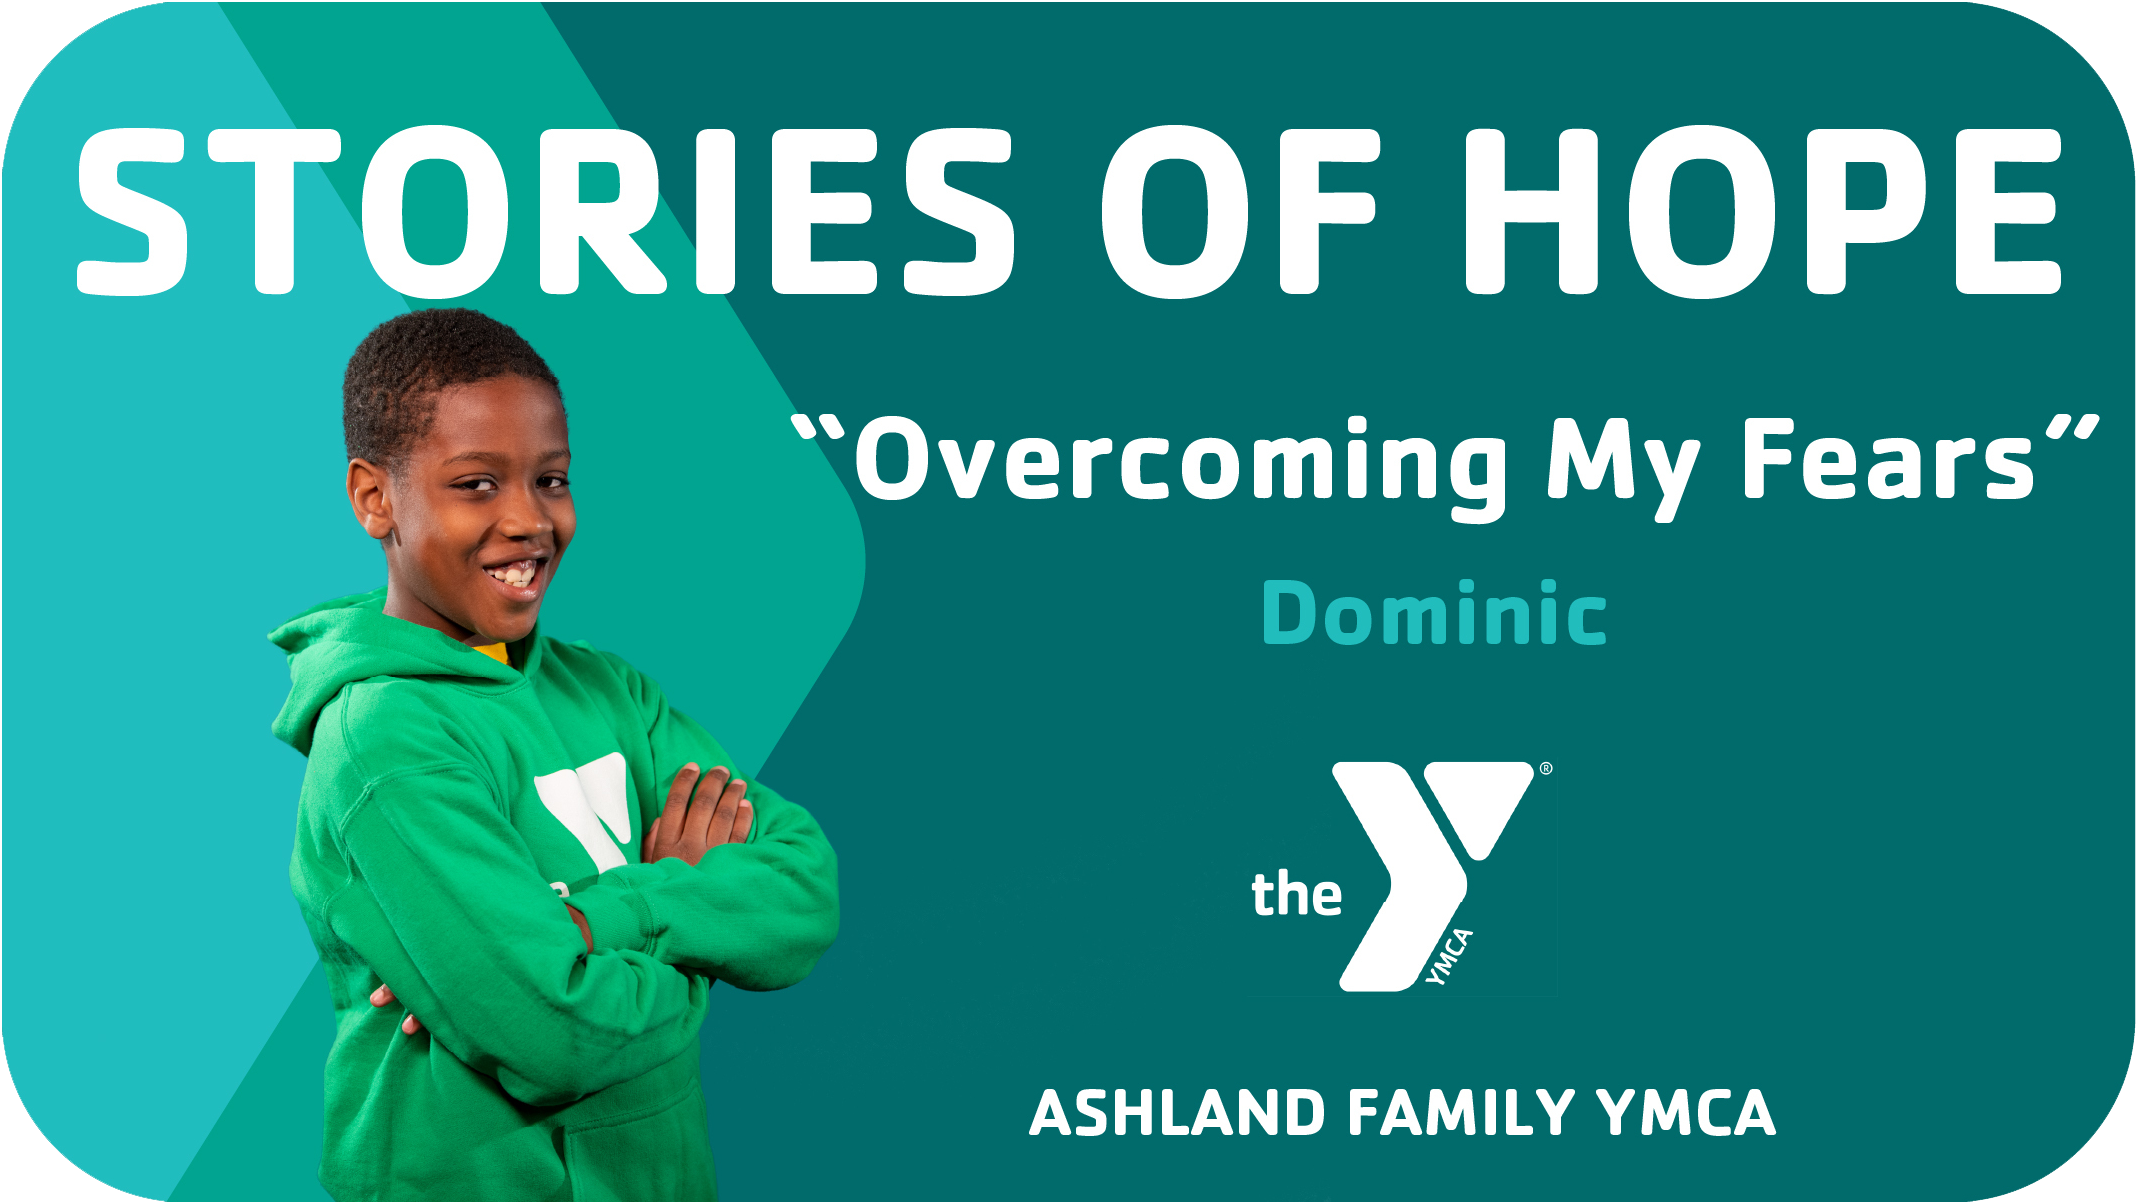 Dominic's Story of Hope